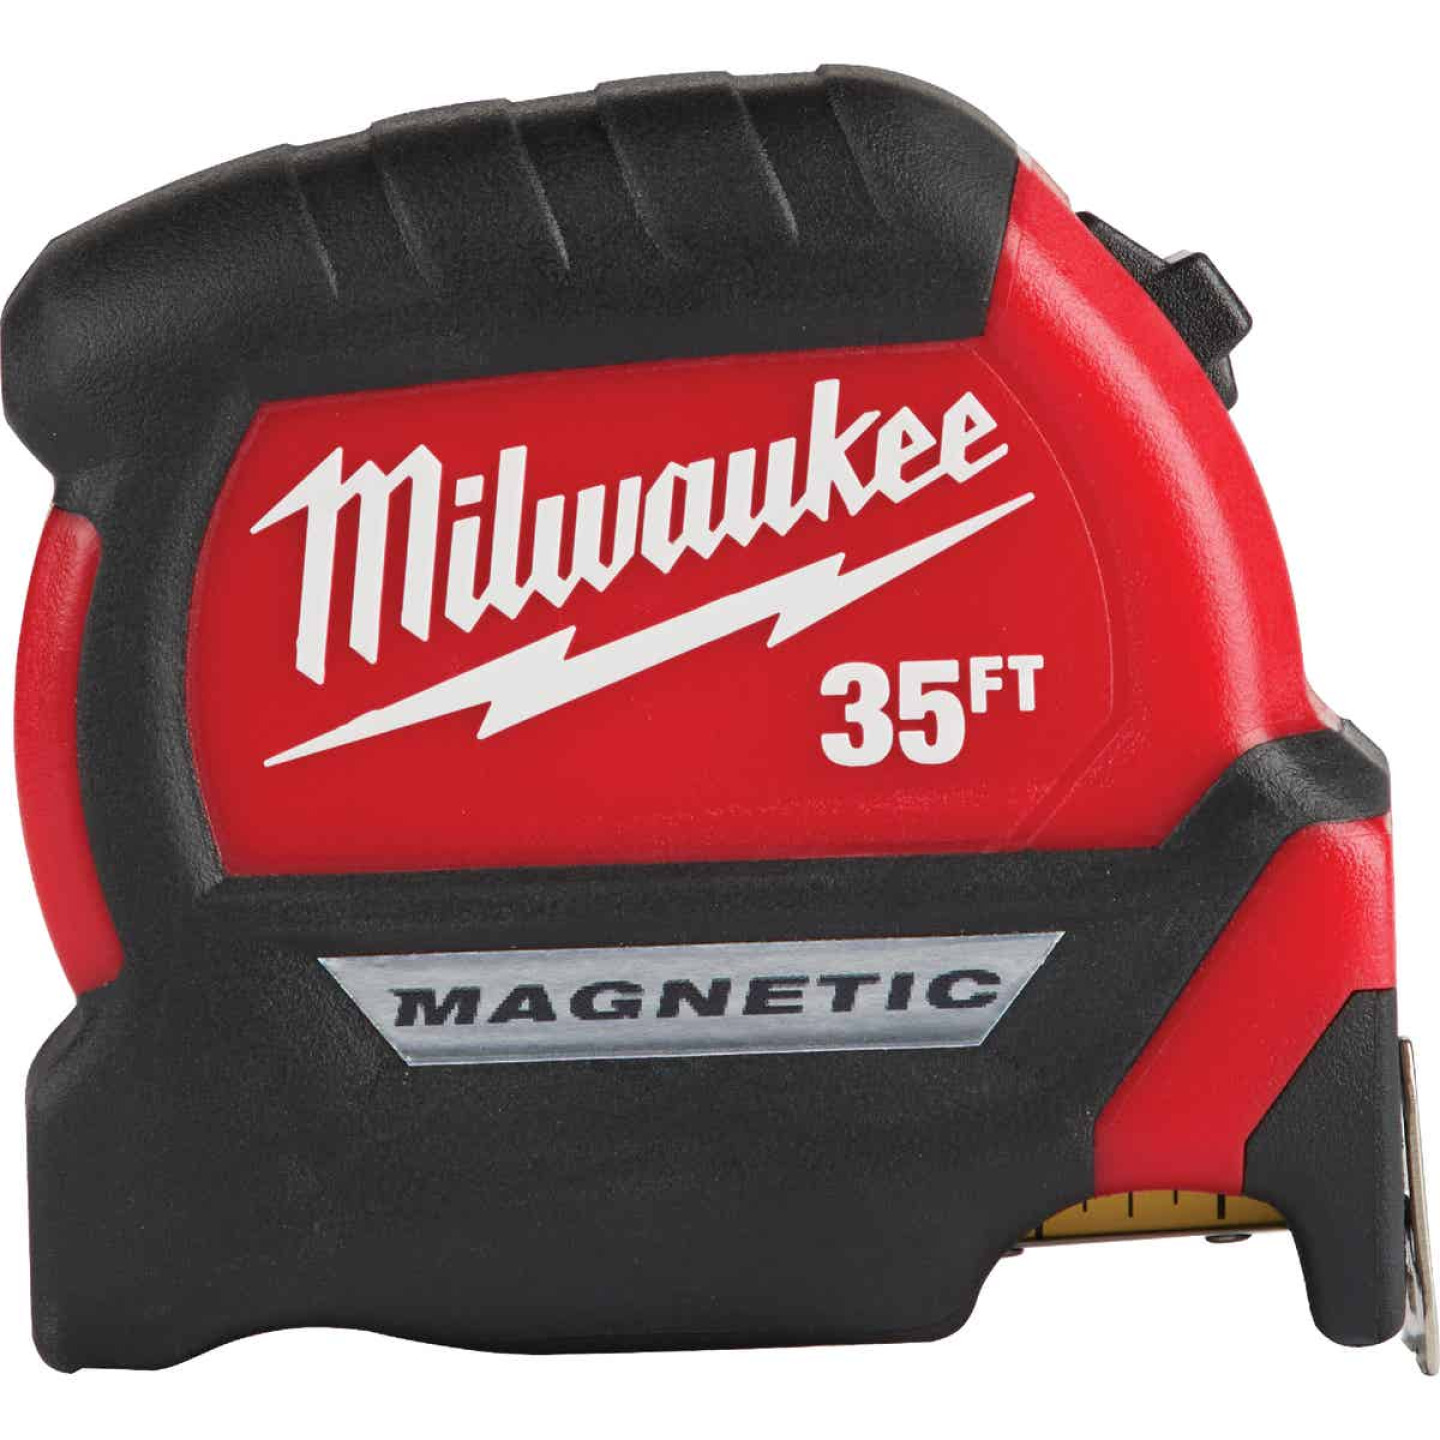 Milwaukee 35 Ft. Compact Wide Blade Magnetic Tape Measure Image 1